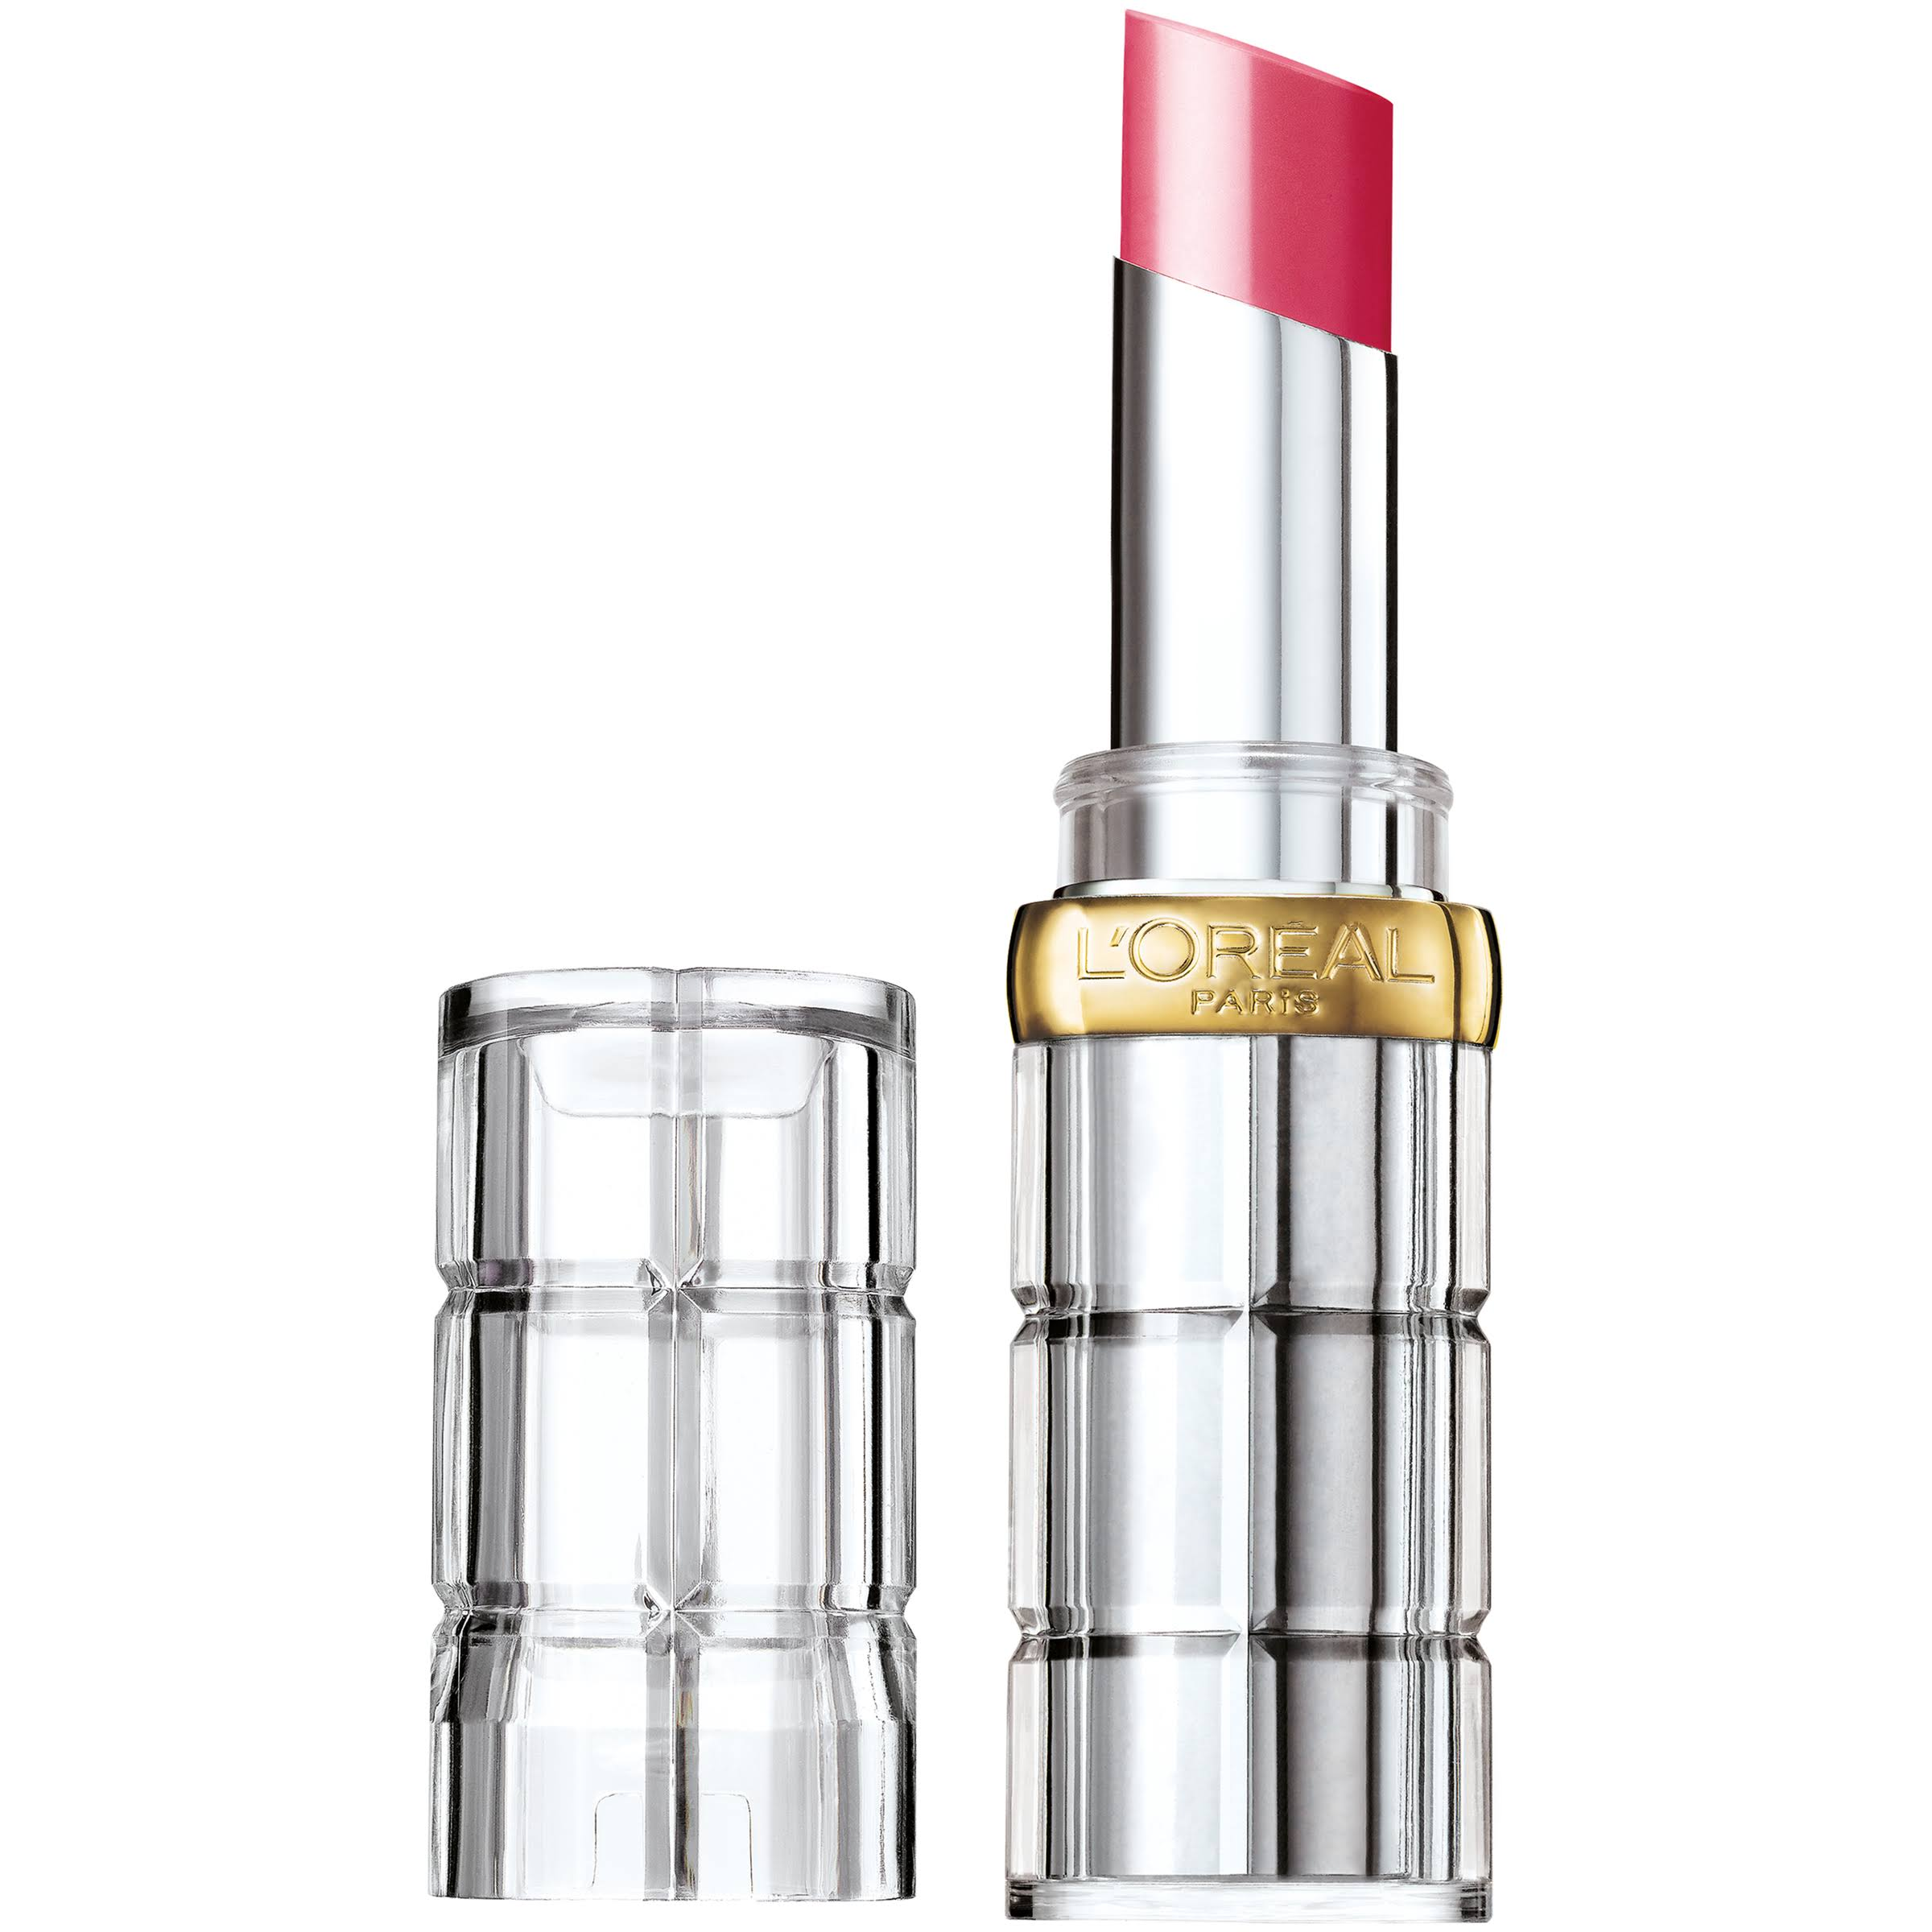 L'Oréal Paris Colour Riche Shine Lipstick - 922 Laminated Fucshia, 0.1oz